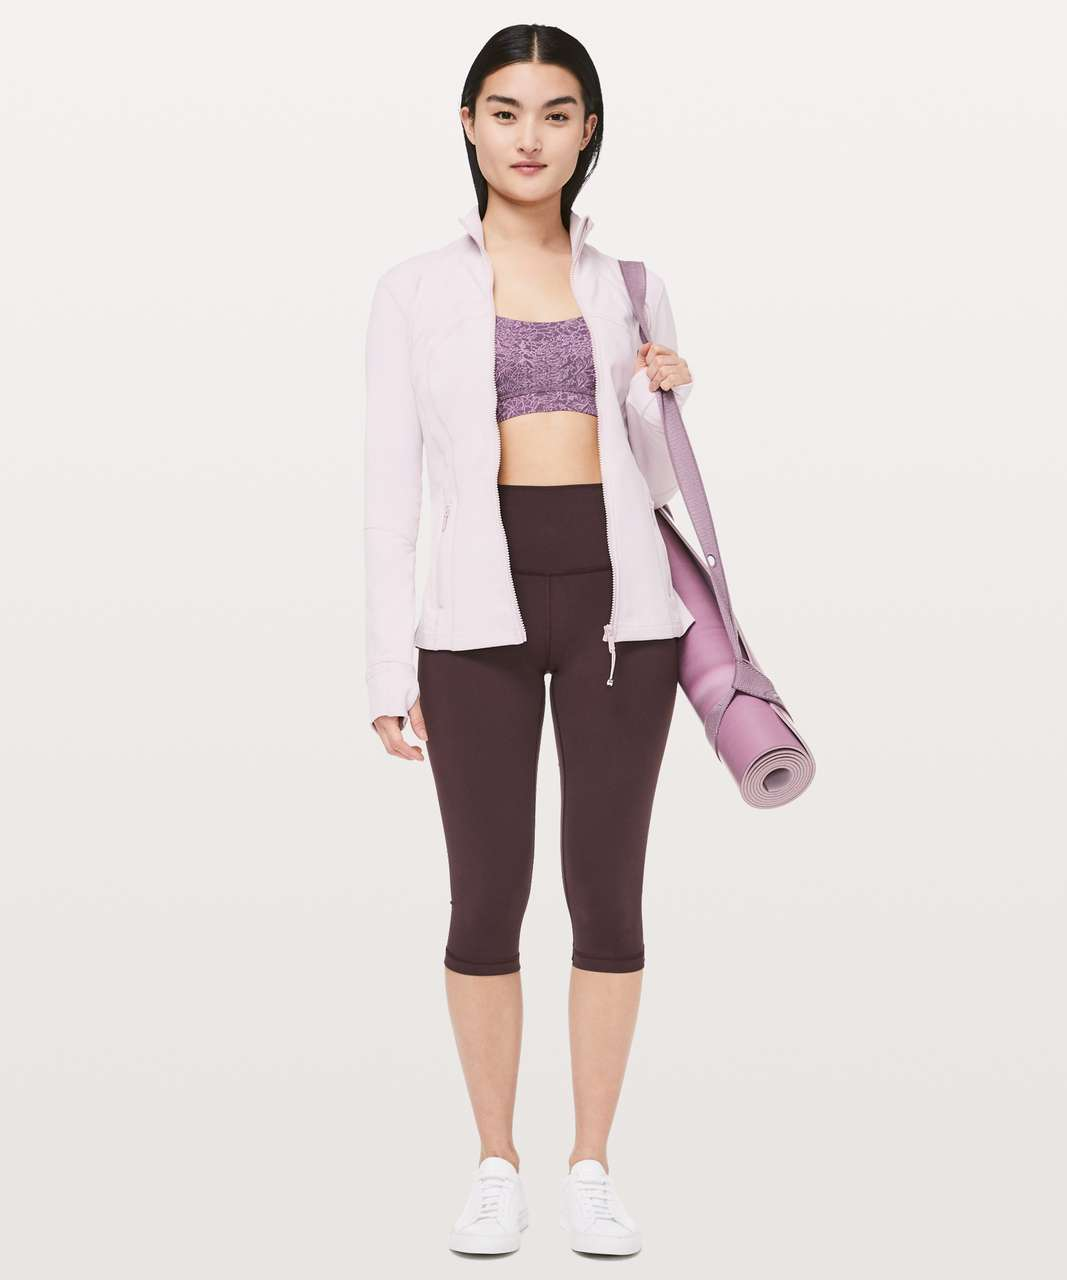 Lululemon Flow Y Bra *Nulu - Arabesque Antoinette Smoky Quartz